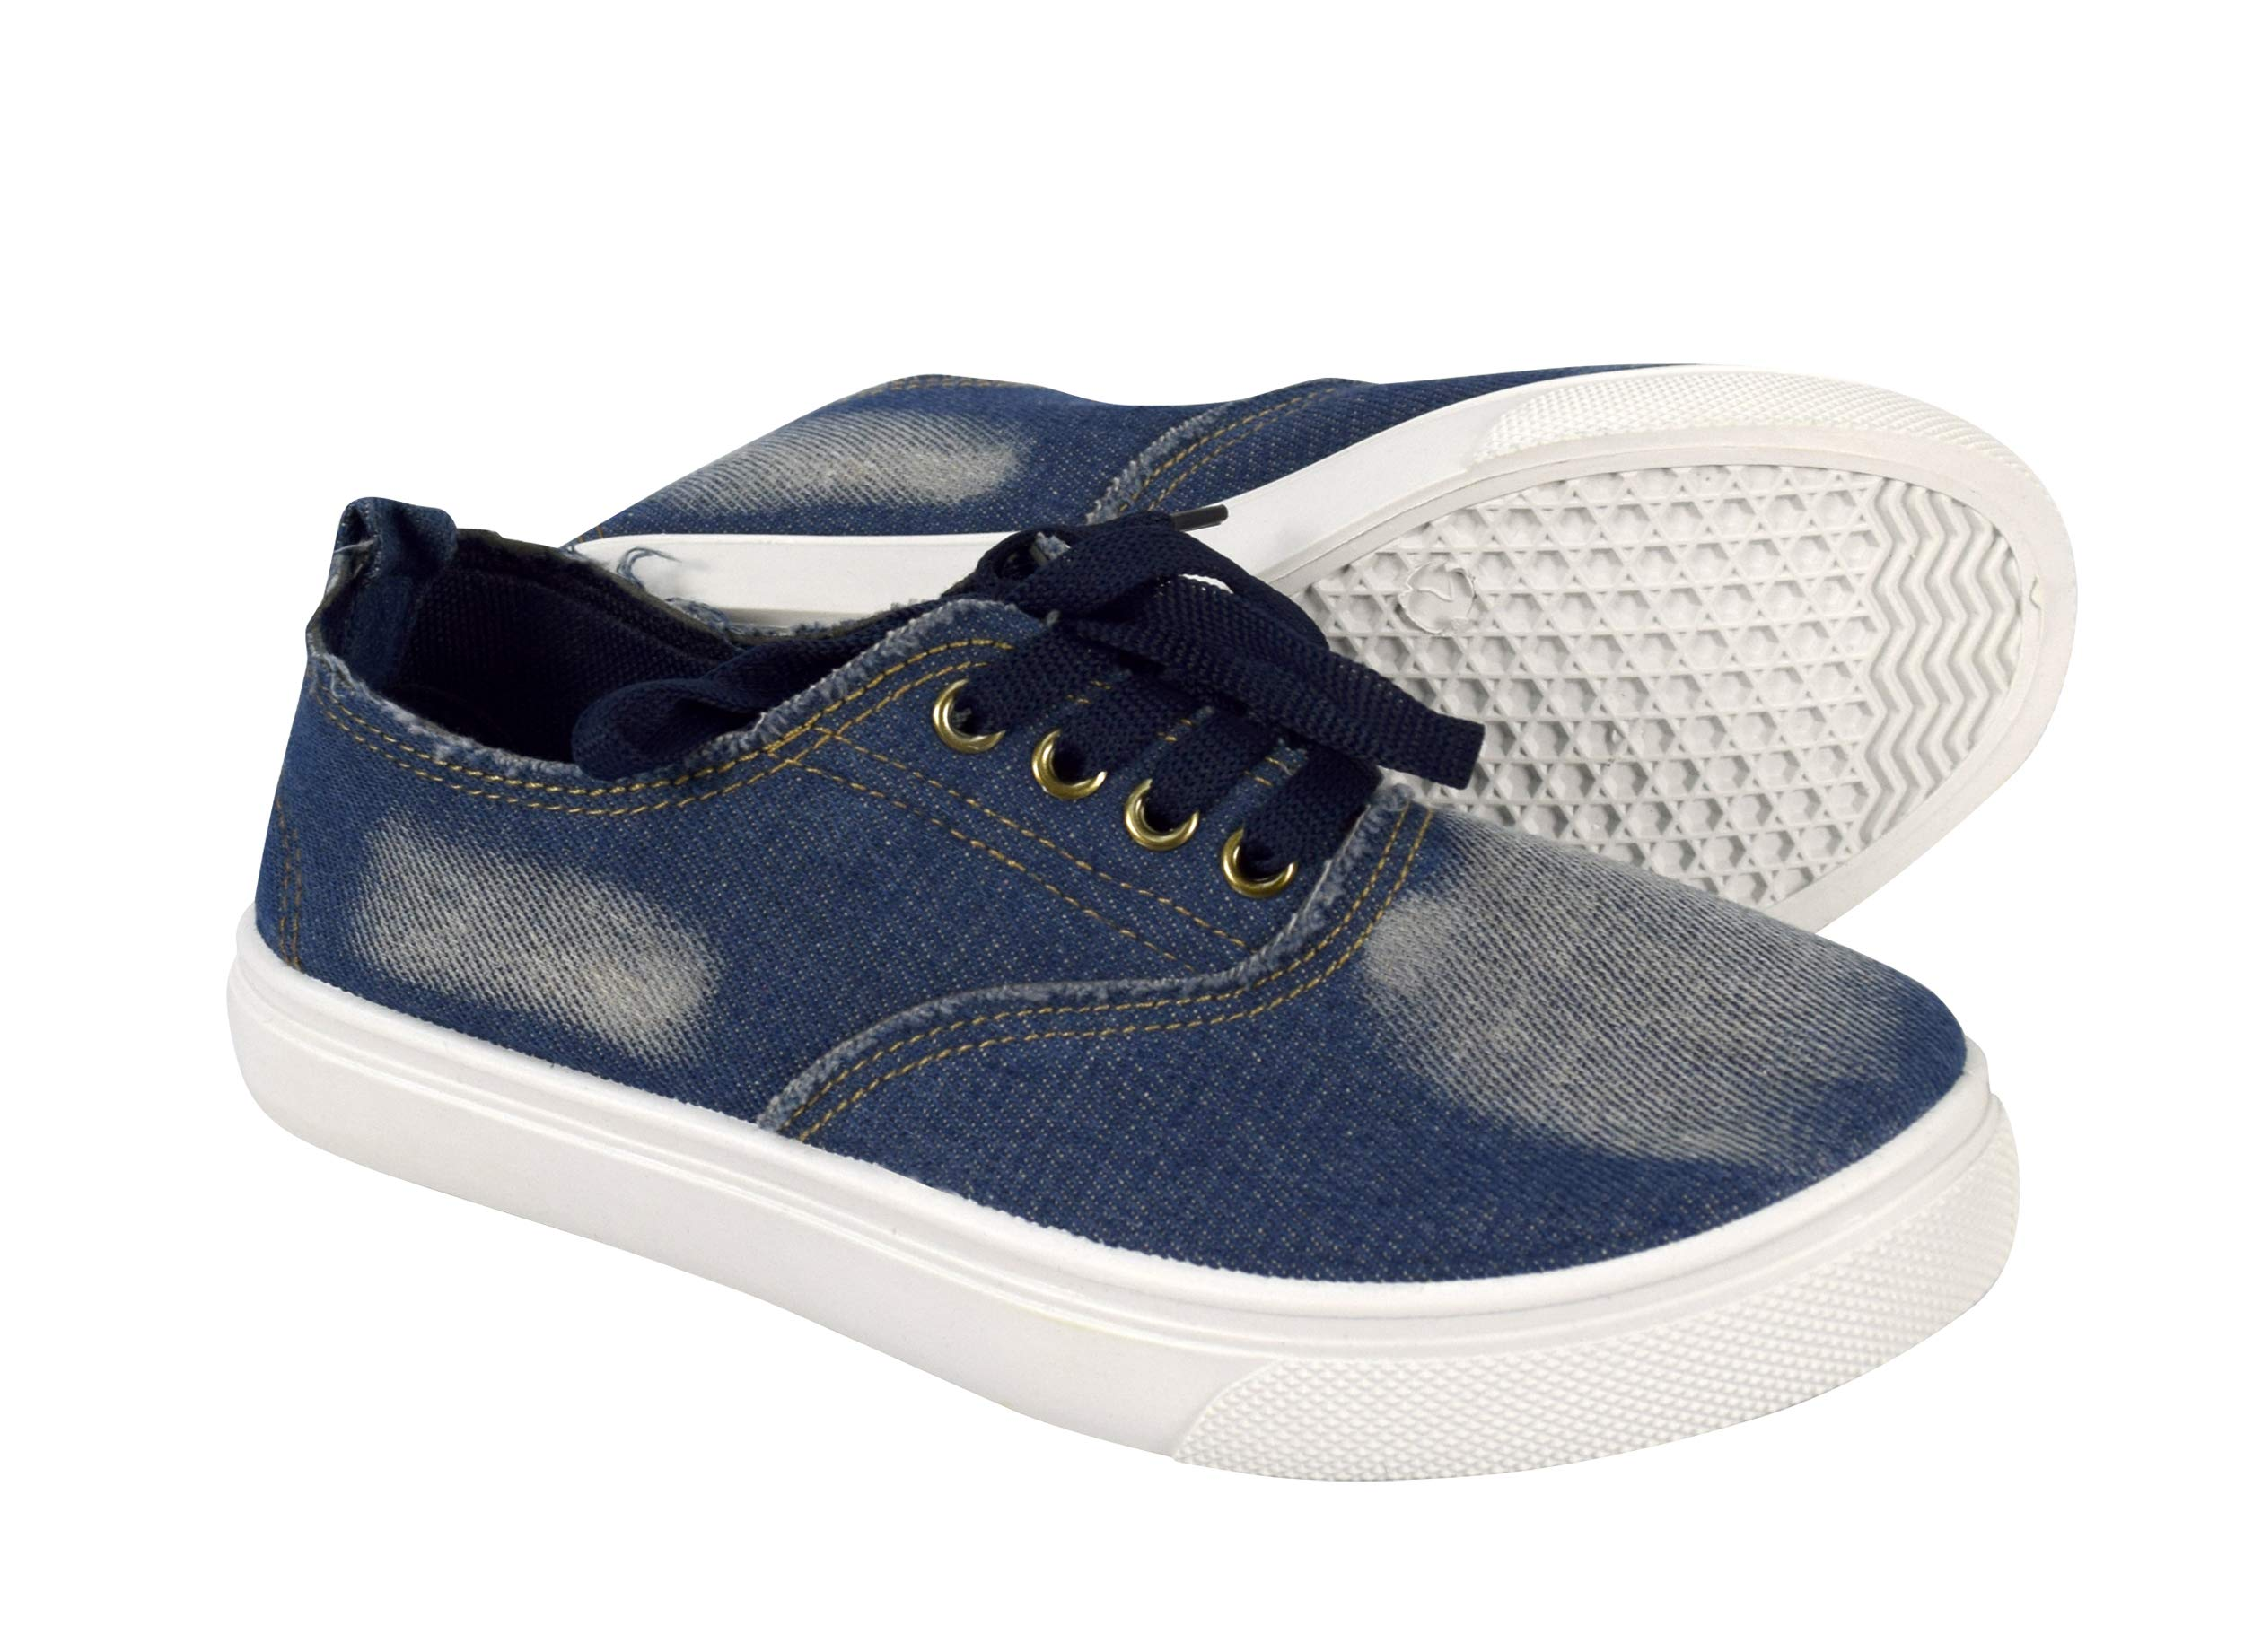 Peach Couture Womens Fashion Distressed Denim Casual Shoes Slip on Sneakers Lace Dark Blue, 10